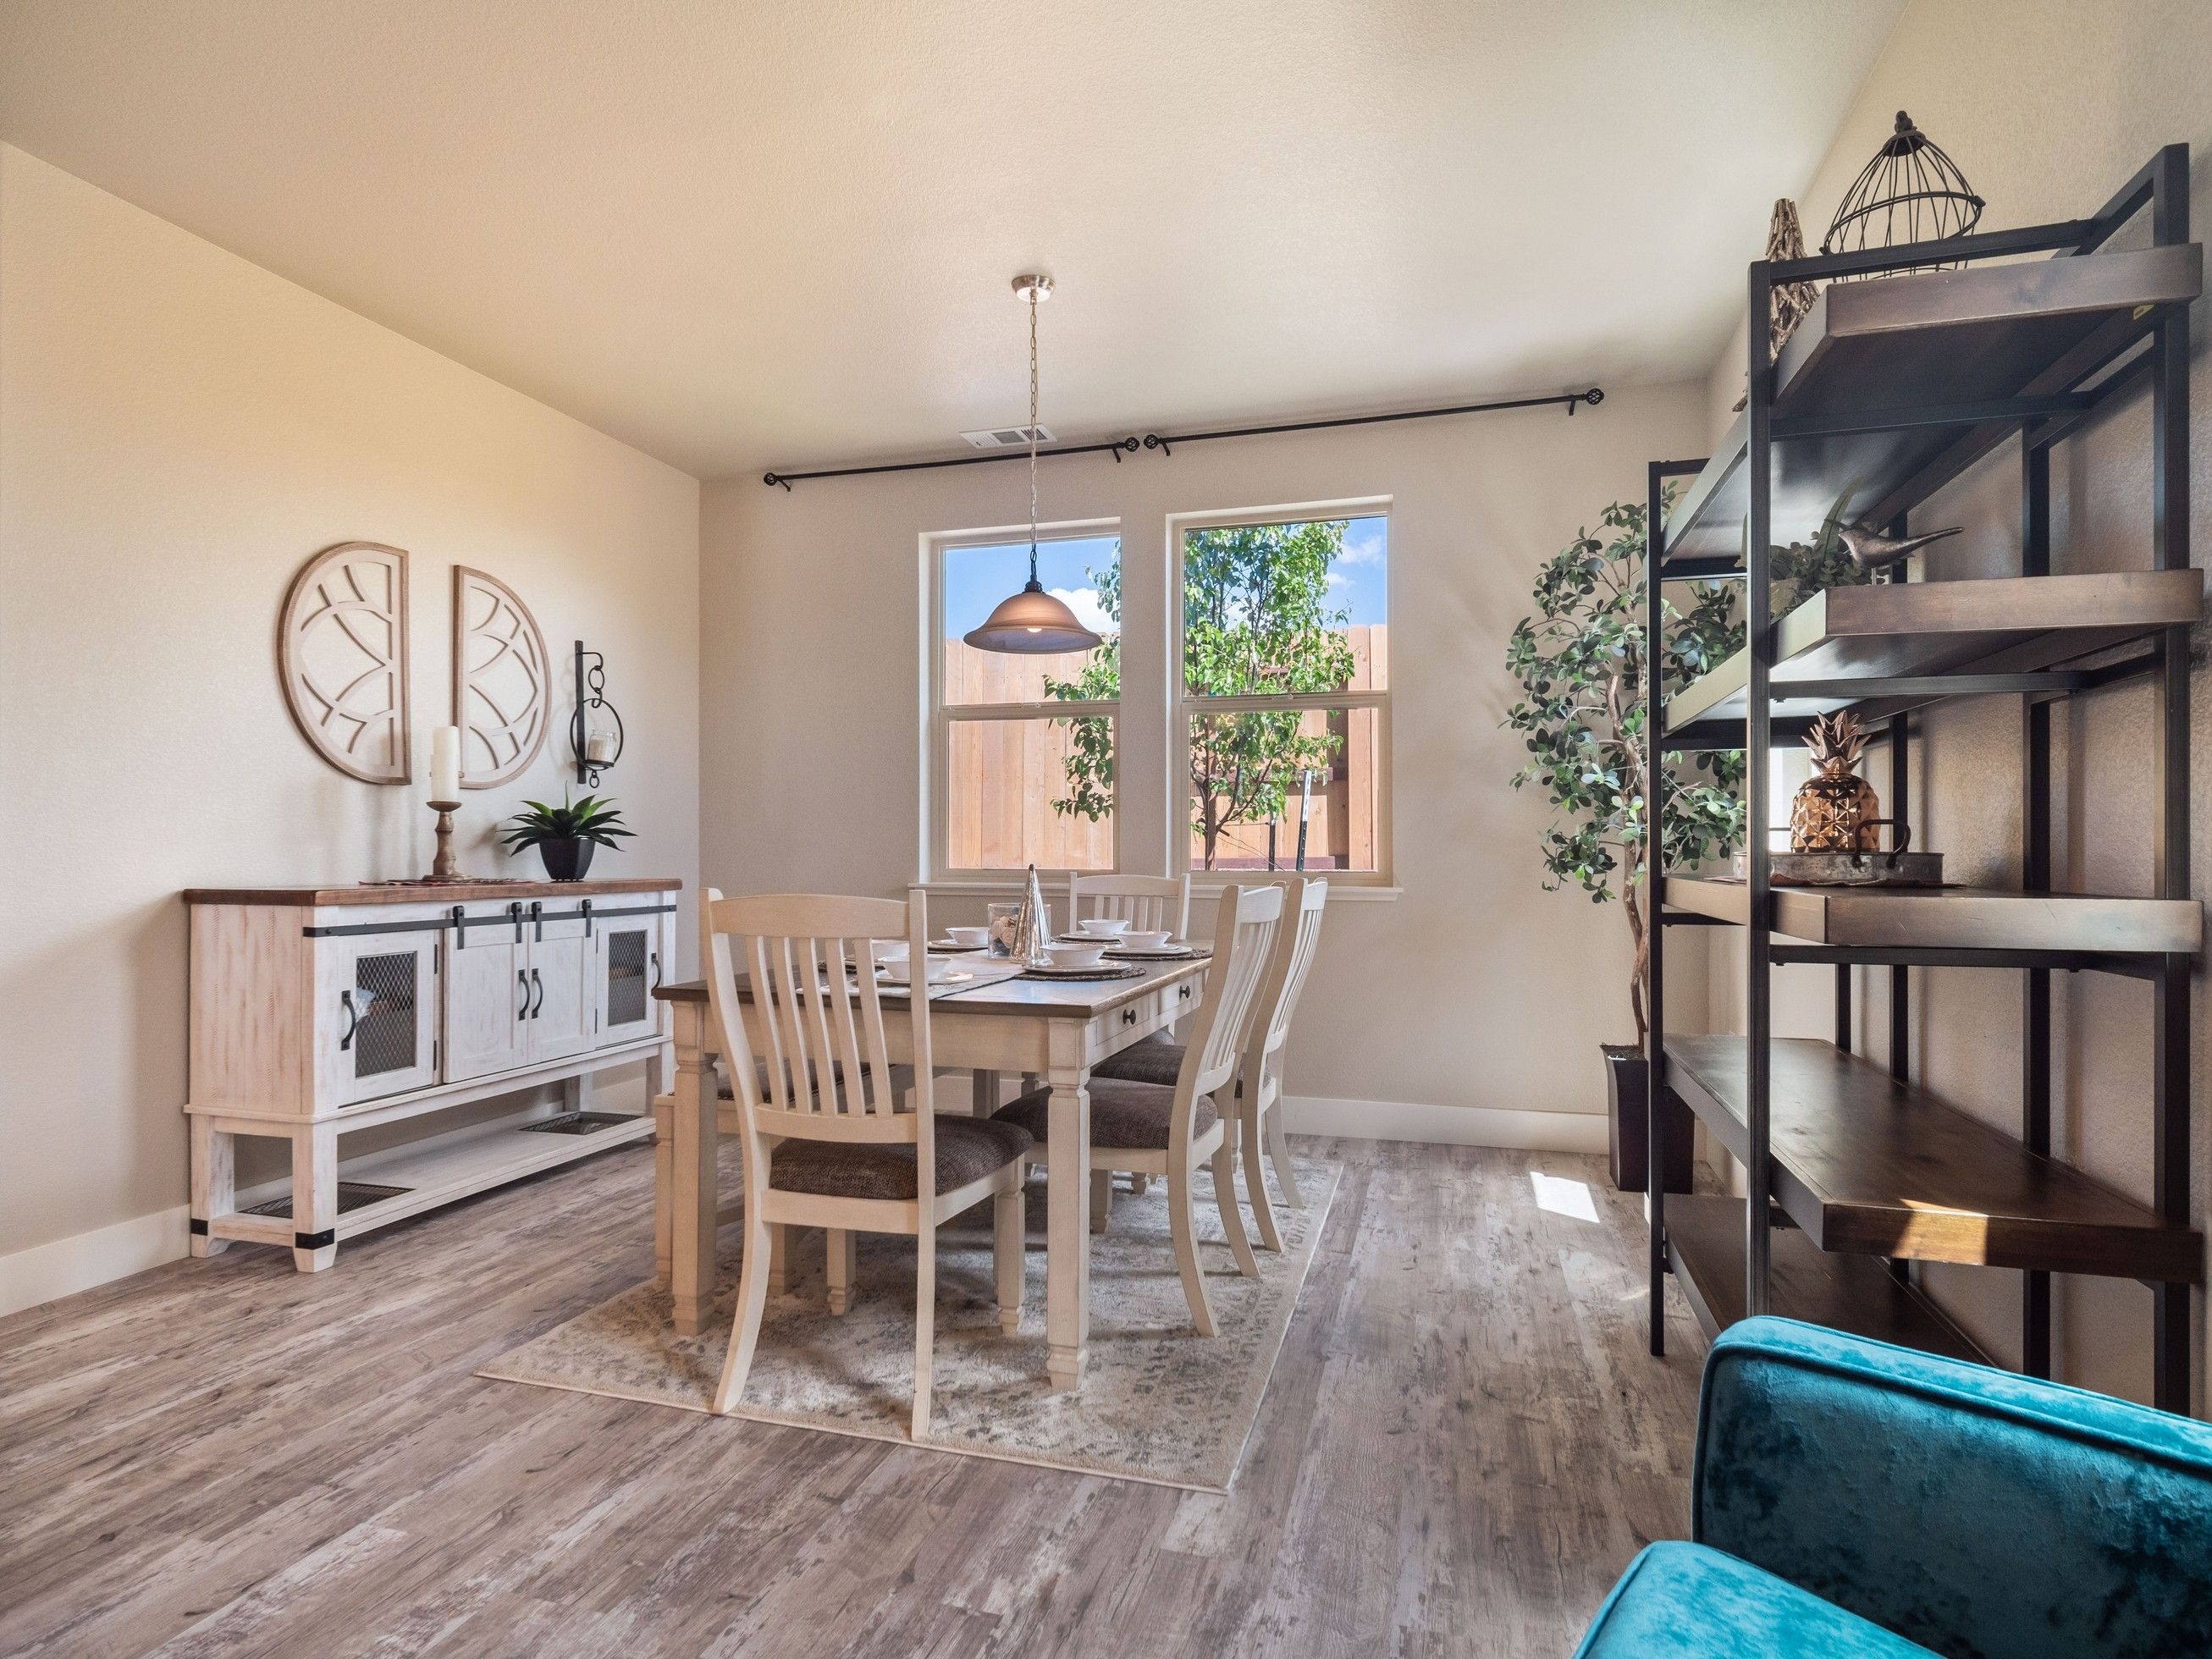 Living Area featured in the Primrose By Carter Hill Homes in Reno, NV